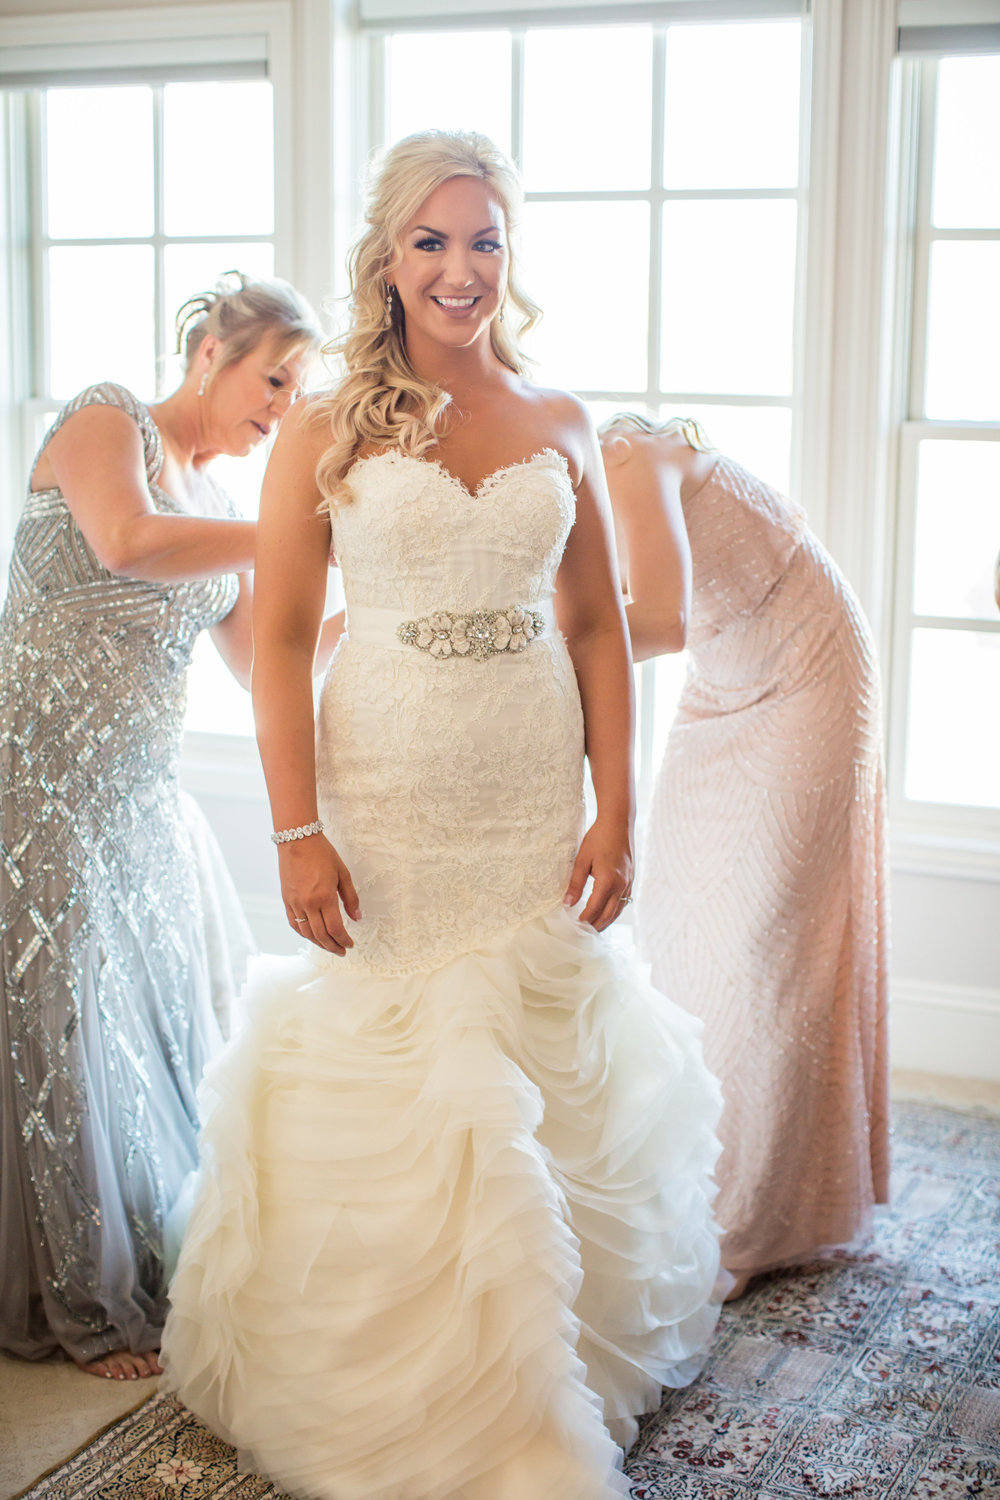 lace bridal gown - A Chico Event Center Penthouse Wedding by Katelyn Owens Photography